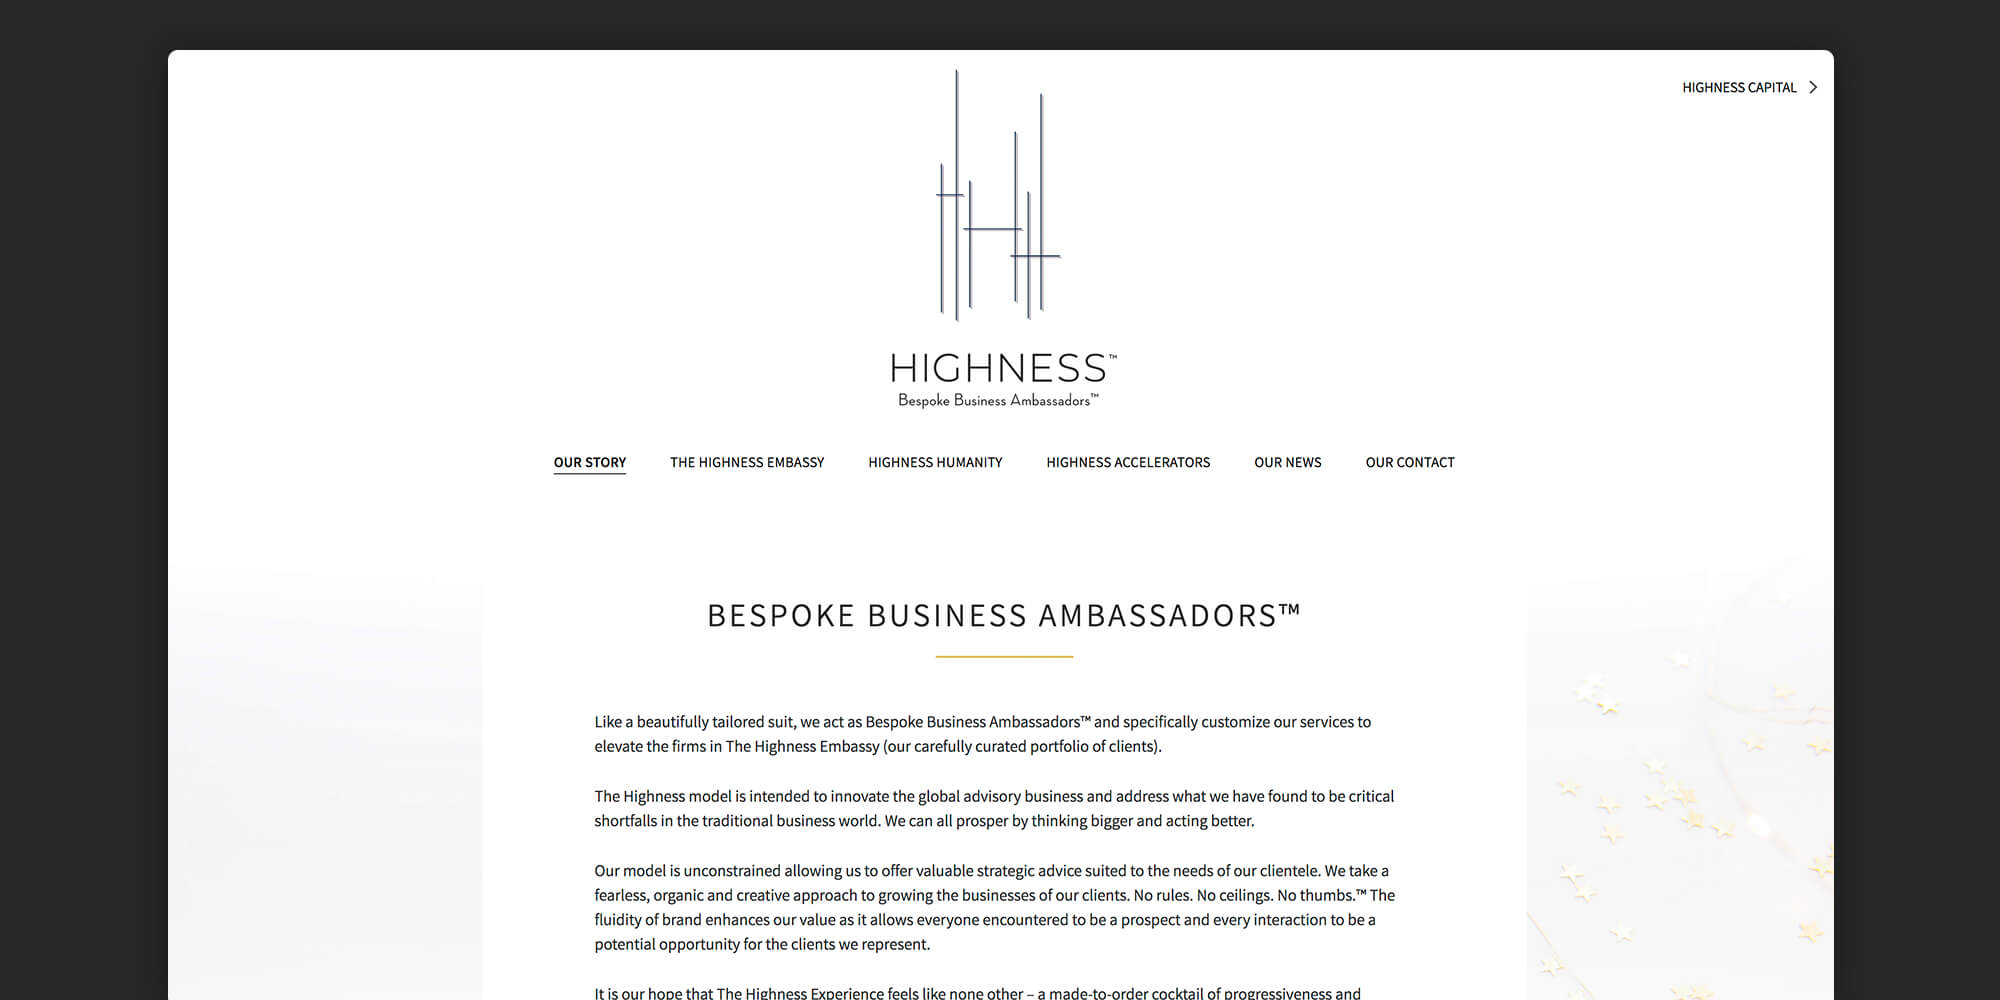 Highness Global Capital